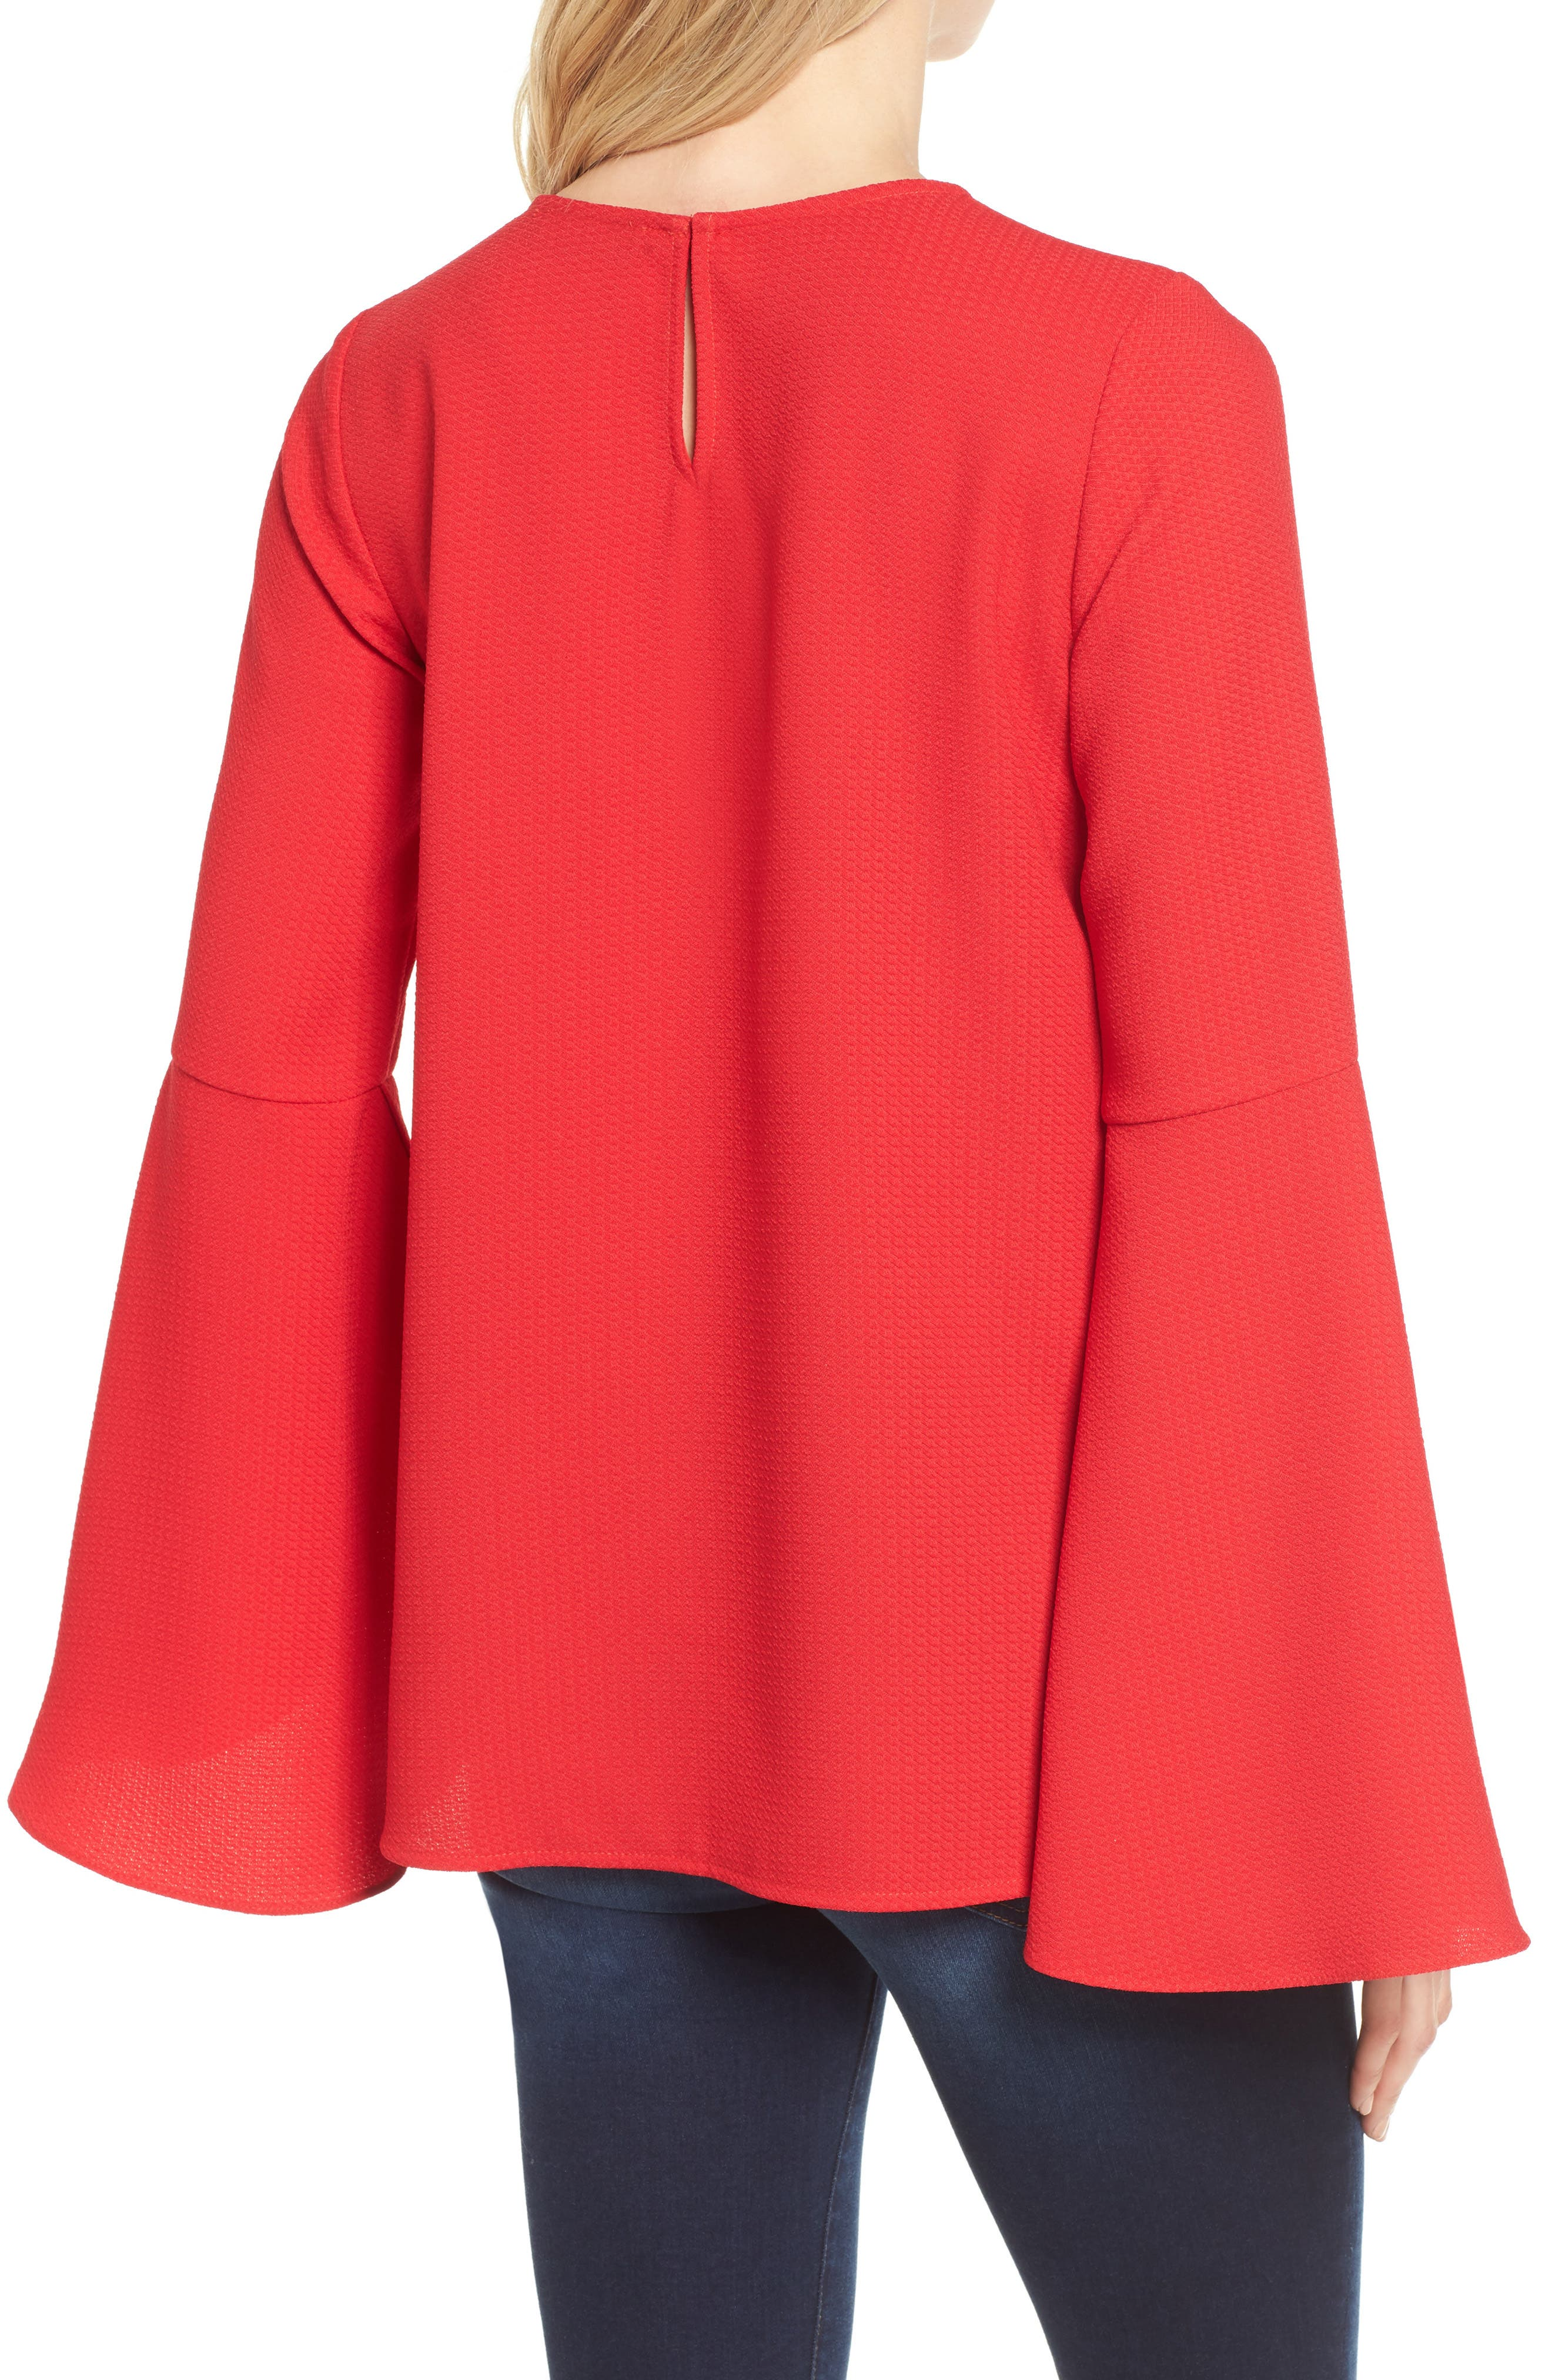 Bell Sleeve Top,                             Alternate thumbnail 2, color,                             Red Pepper